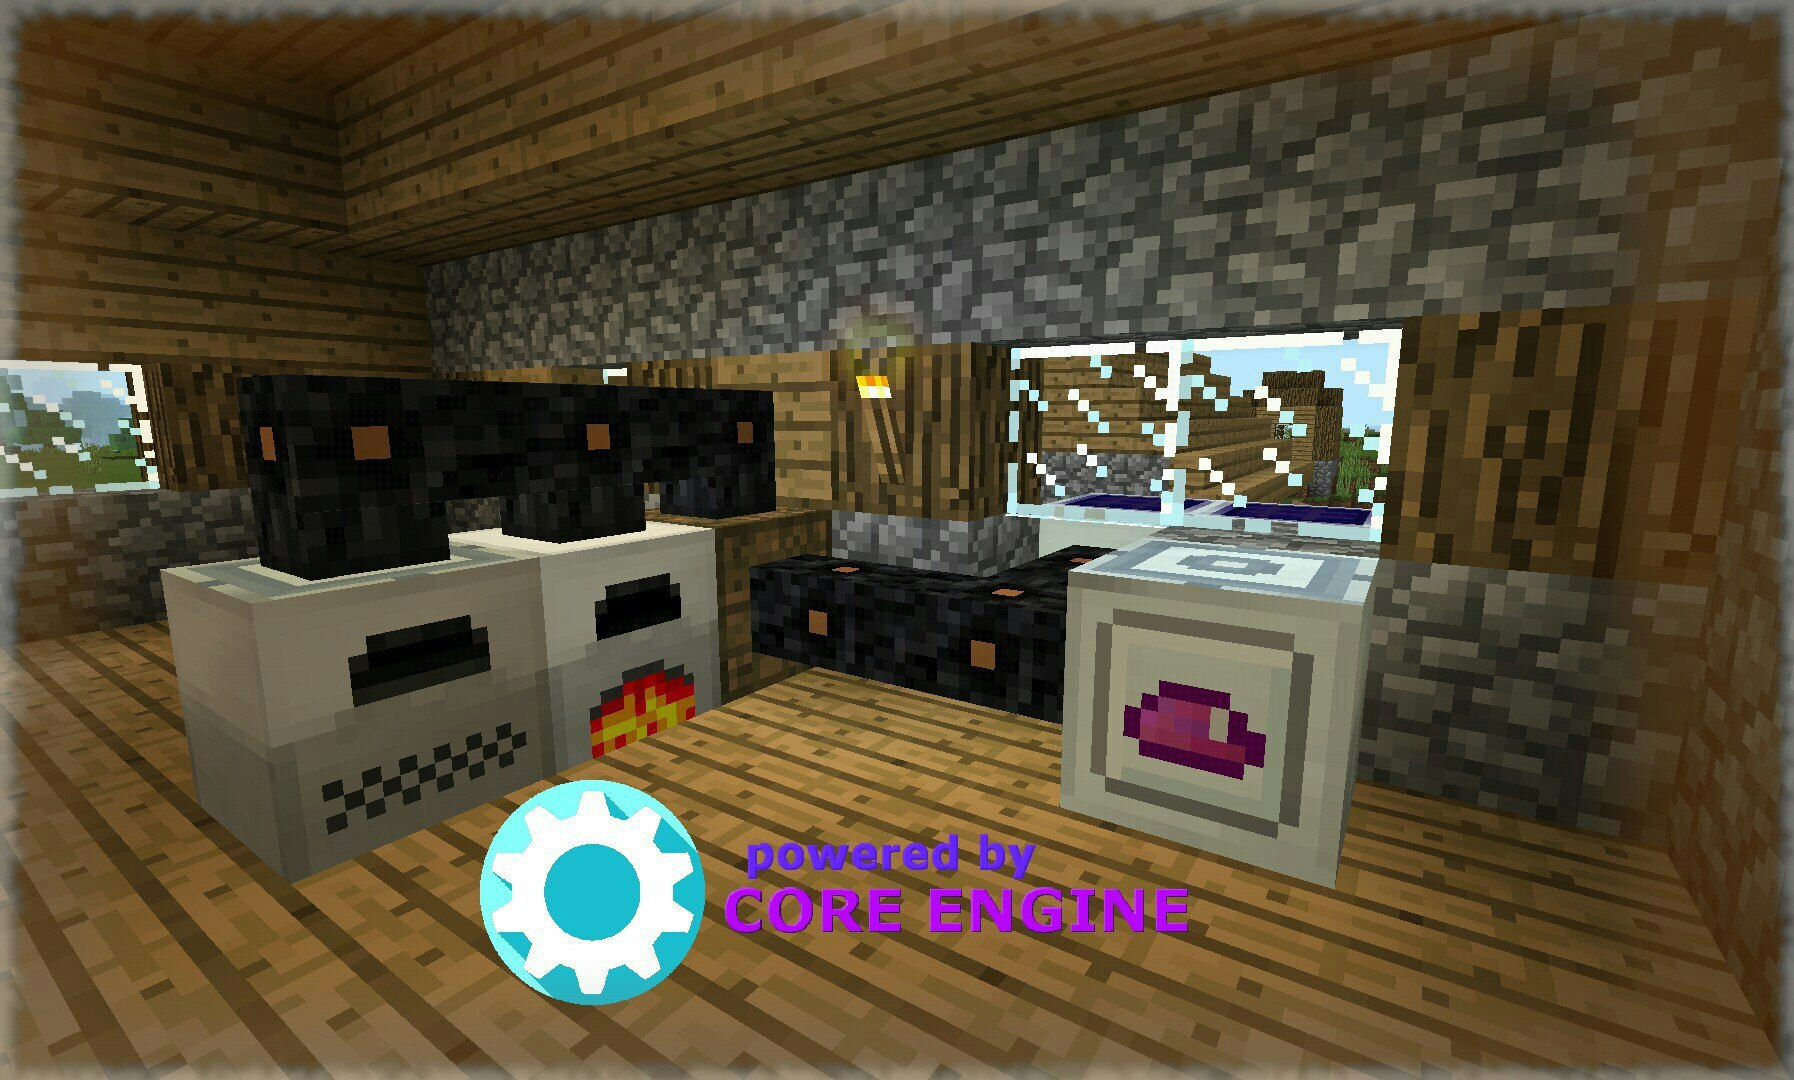 Core Engine - Minecraft PE Mod Engine & API - MCPE: Mods